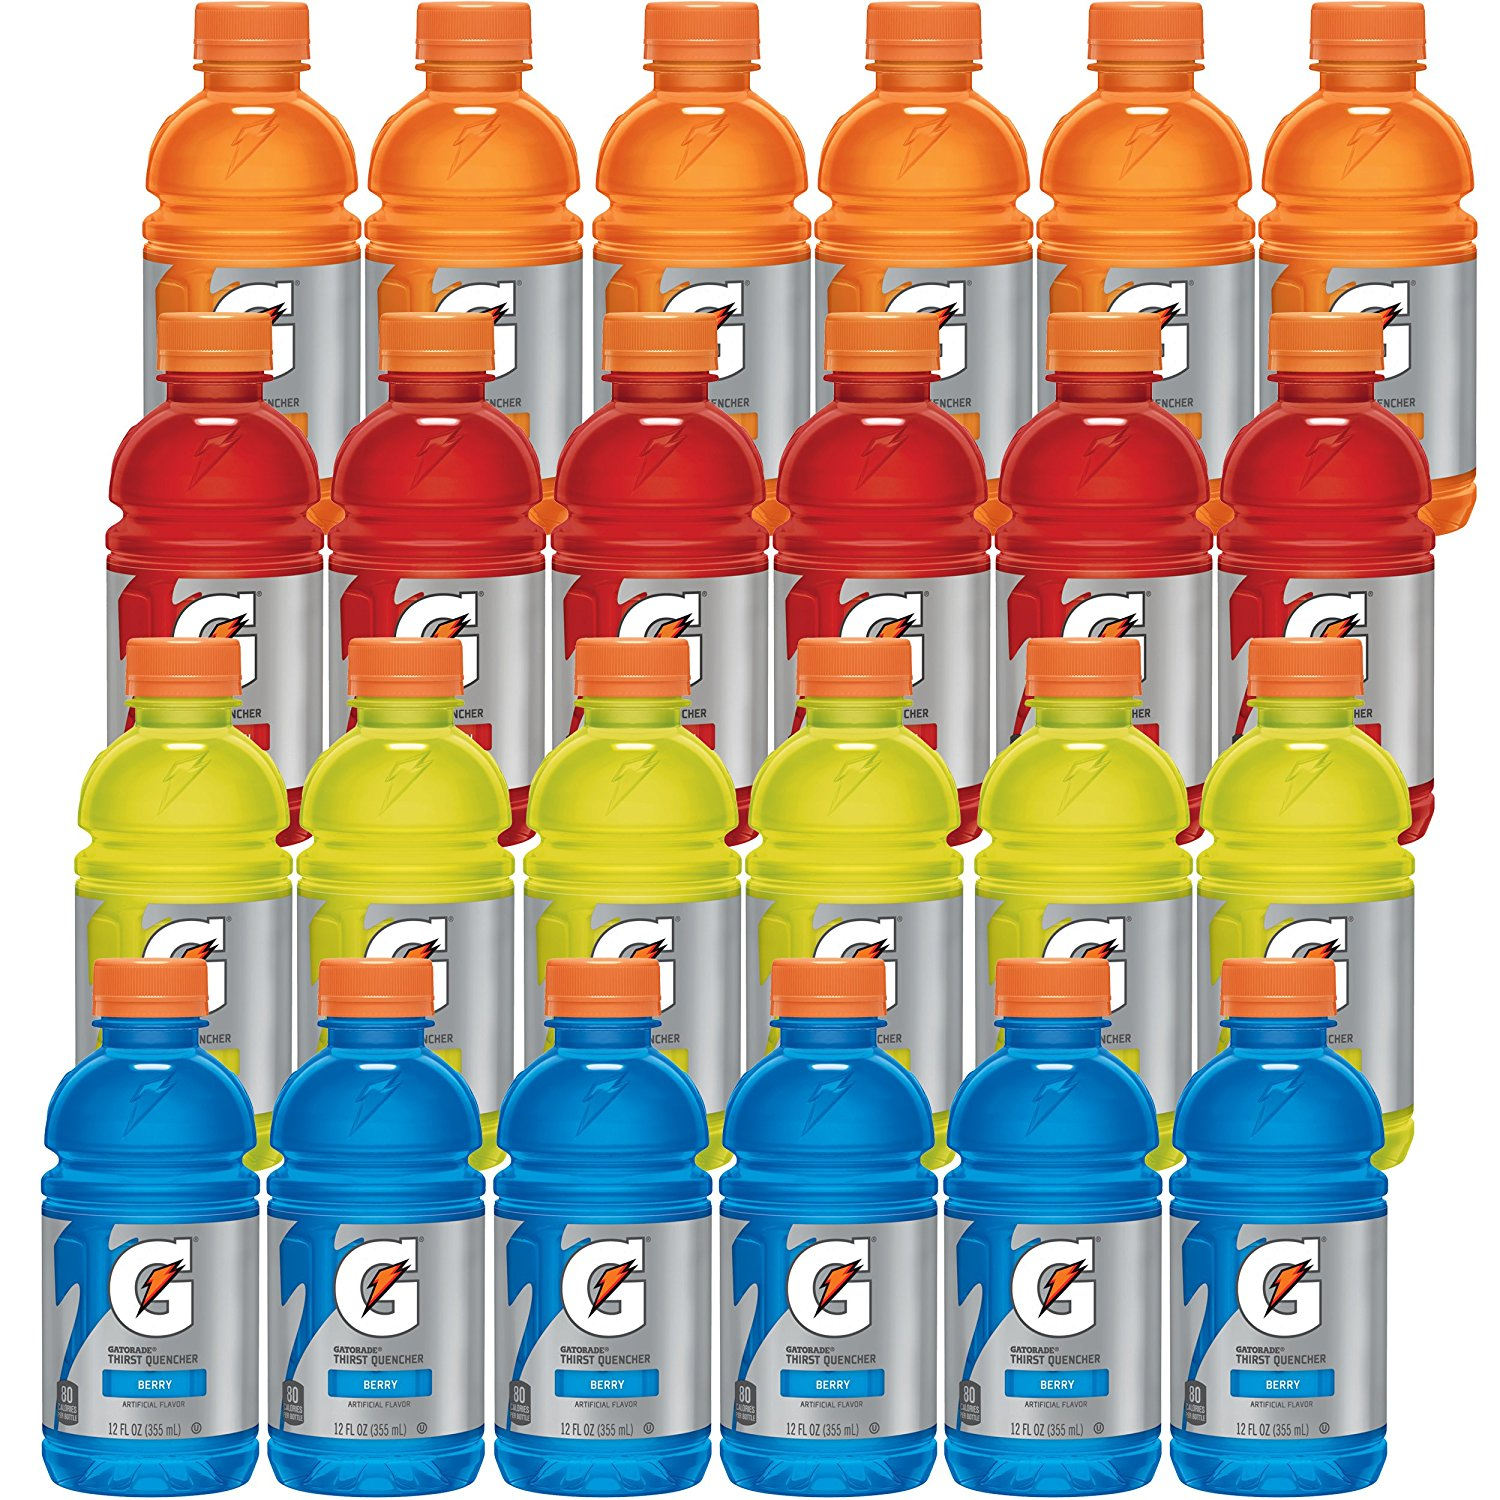 e3b484ce8e583 Amazon: Gatorade Thirst Quencher 24-Count Variety Pack Just $8.96 ...